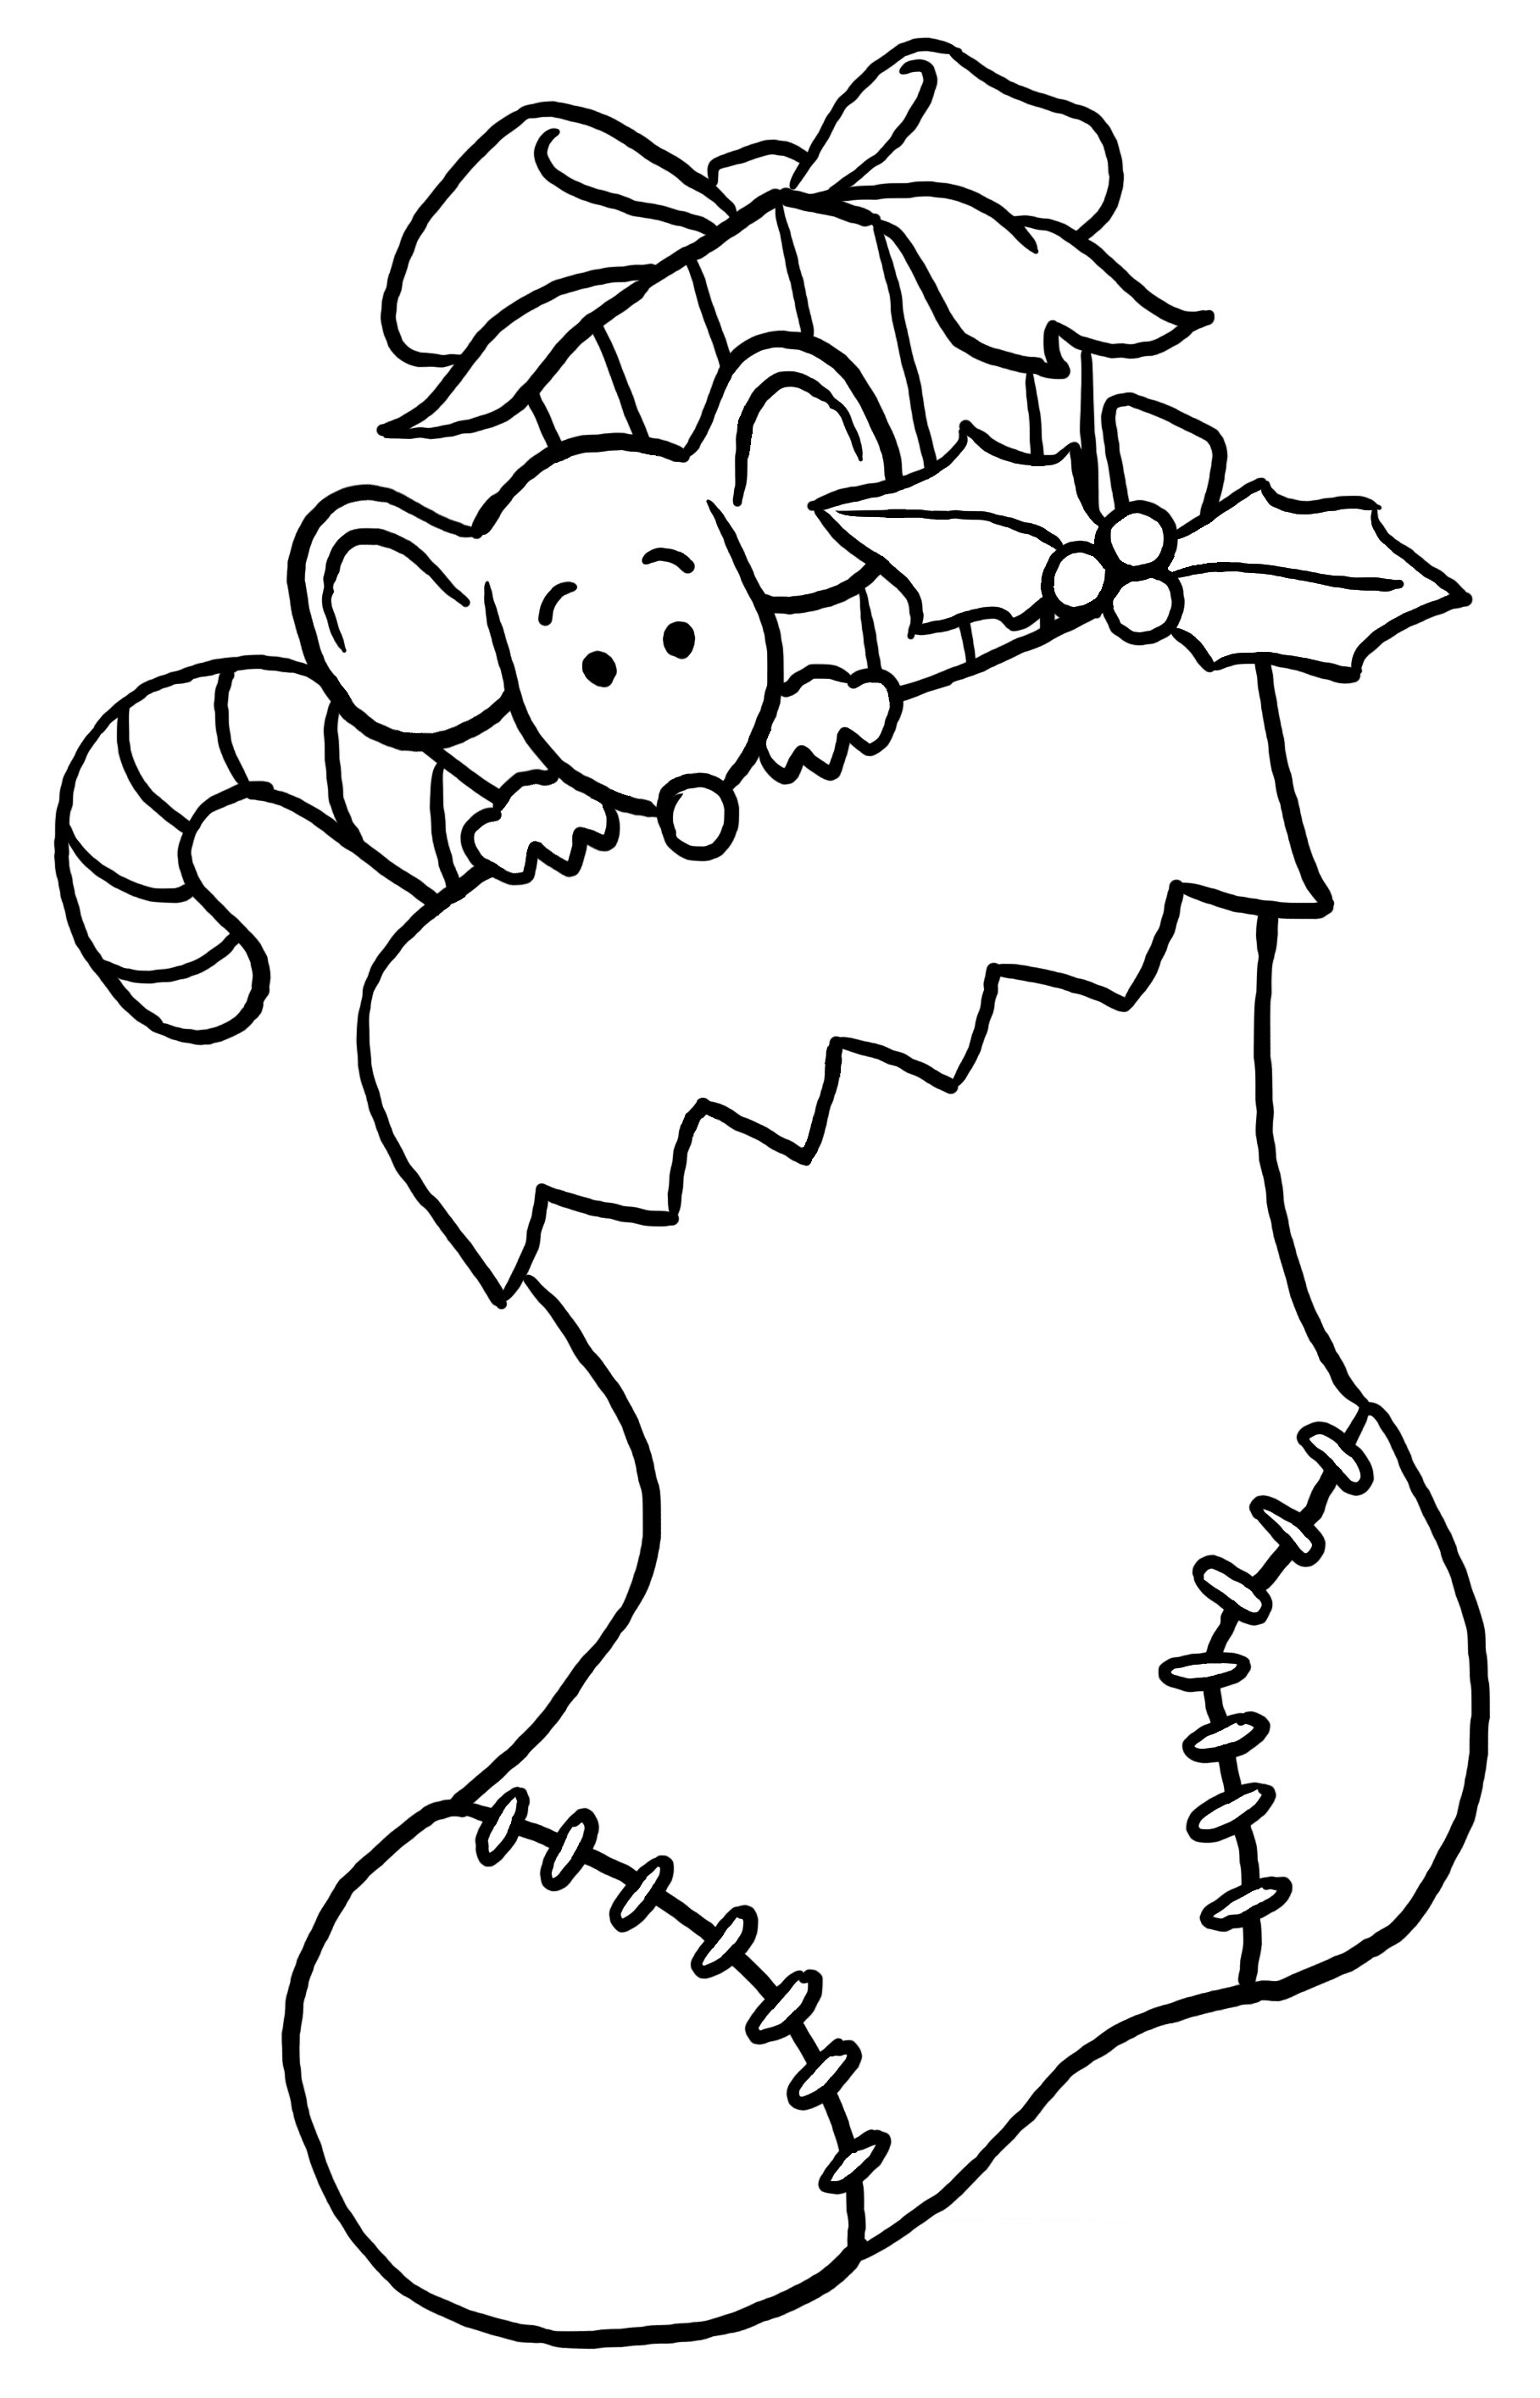 Christmas Colouring Pages Kindergarten With Coloring Books Free Santa Claus